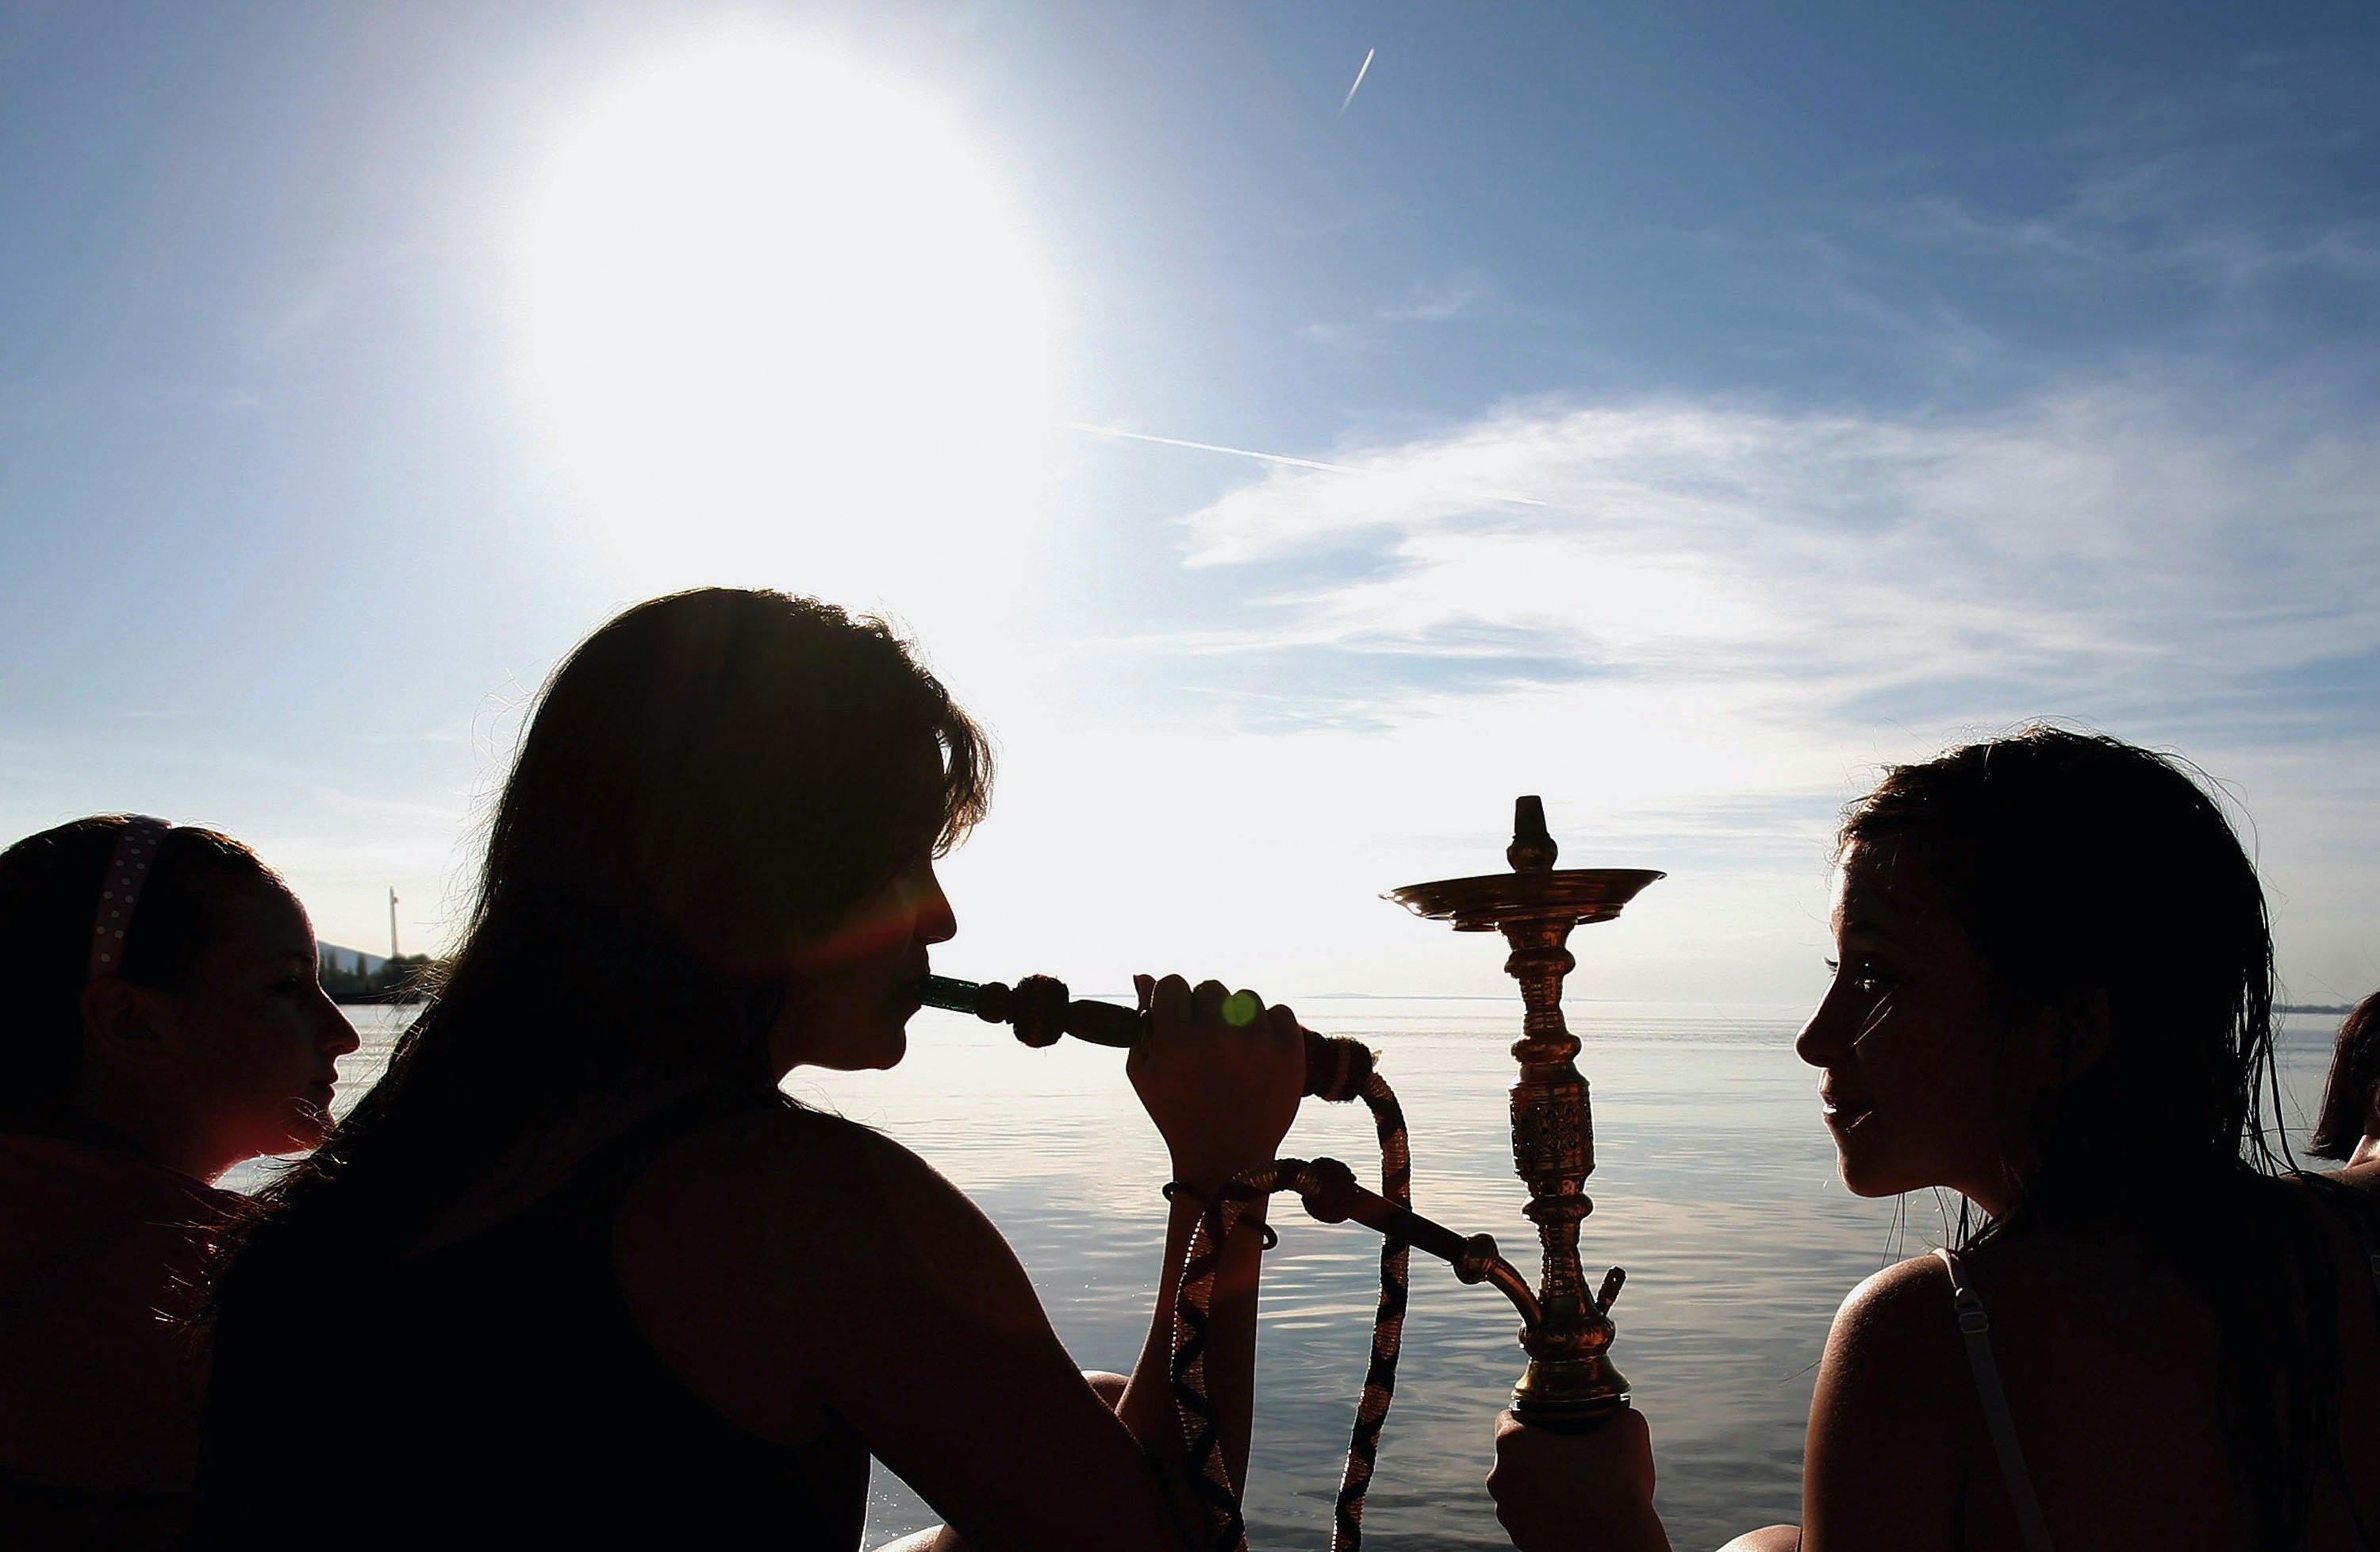 hookah is worse than cigarettes, so take it easy on the flavored smoke